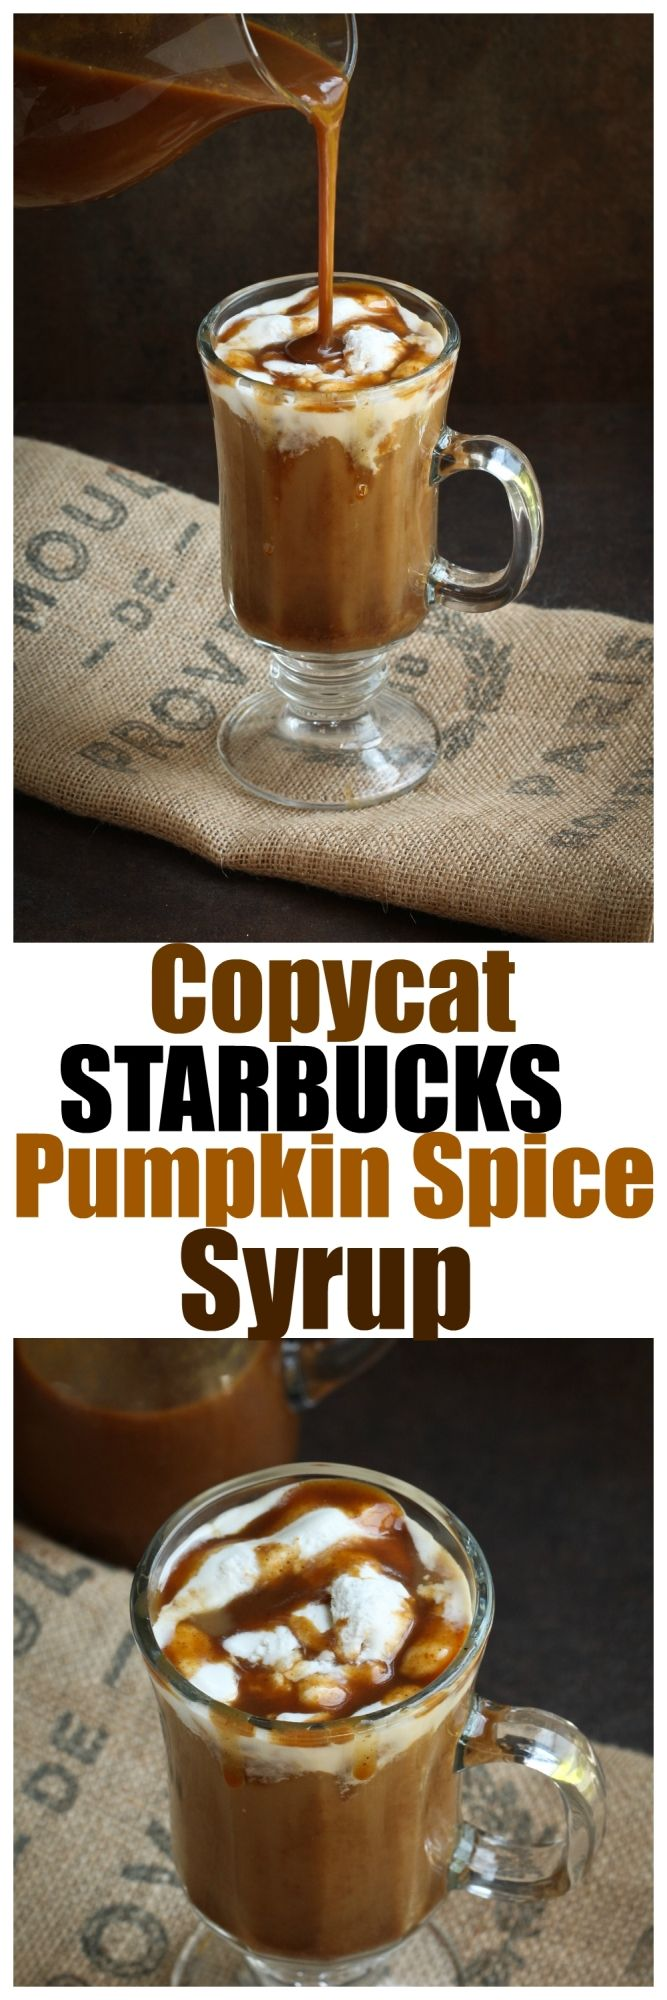 Make homemade lattes, smoothies or desserts with this easy Copycat Starbucks Pumpkin Spice Sauce!